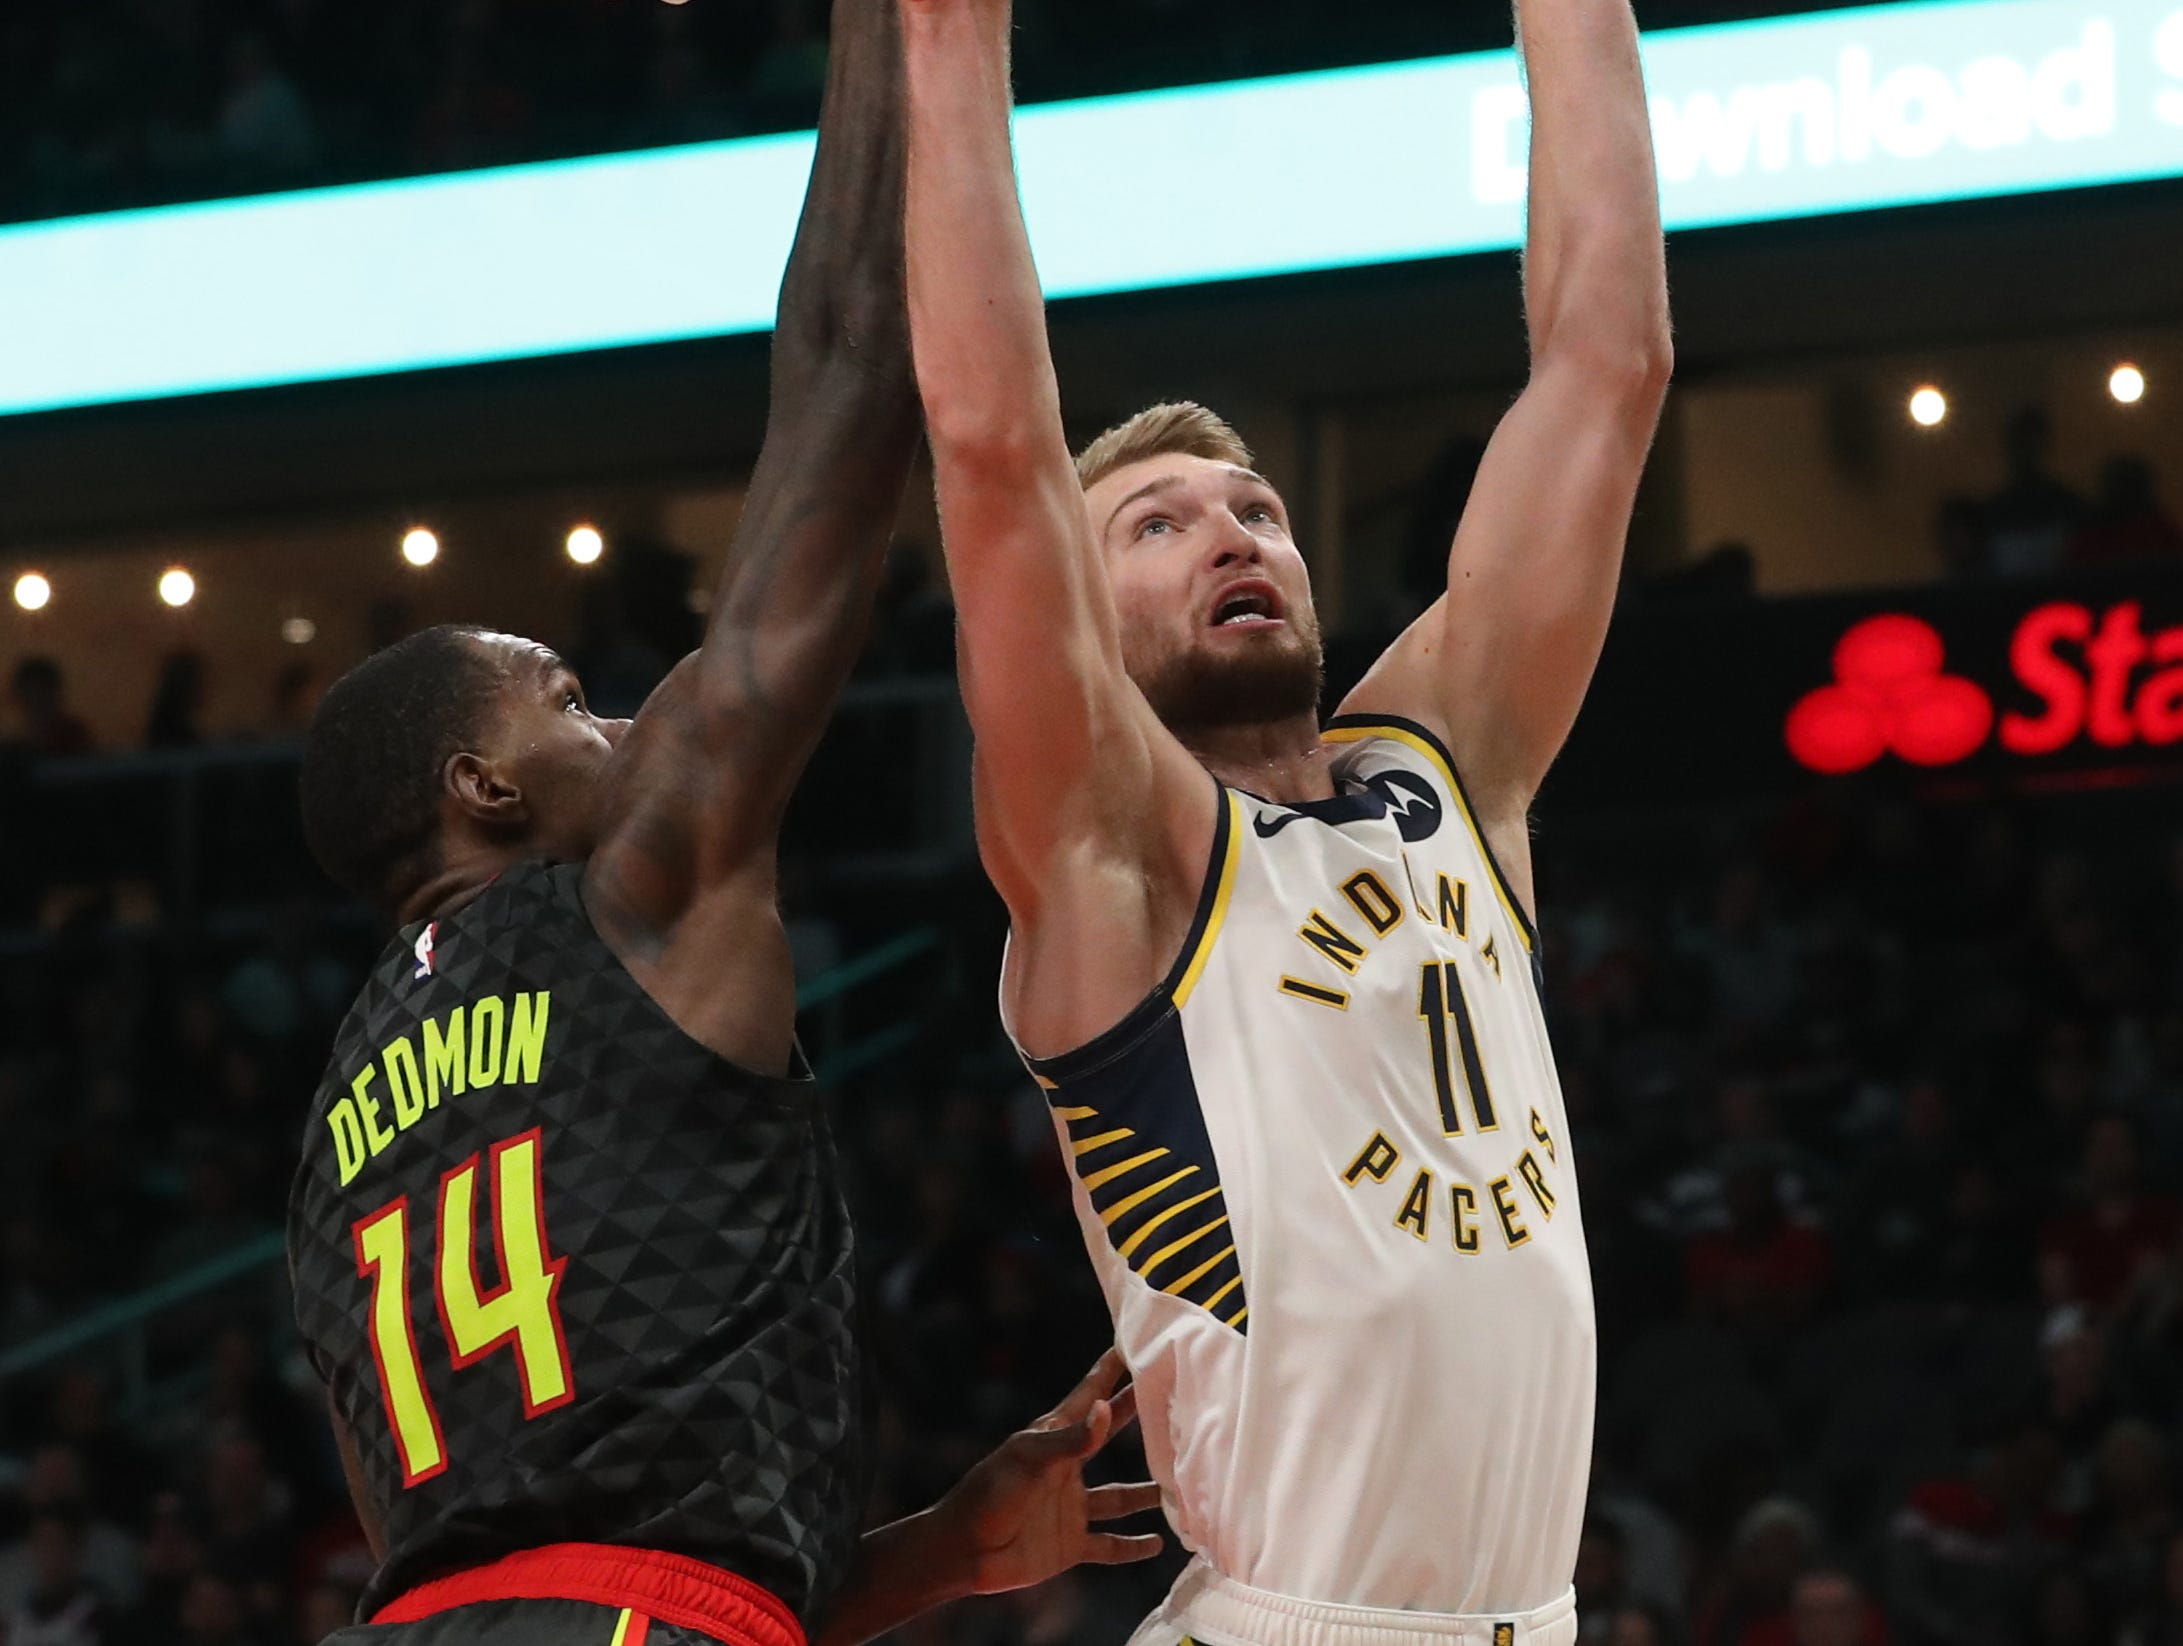 Dec 26, 2018; Atlanta, GA, USA; Indiana Pacers forward Domantas Sabonis (11) attempts a shot against Atlanta Hawks center Dewayne Dedmon (14) in the first quarter at State Farm Arena. Mandatory Credit: Jason Getz-USA TODAY Sports